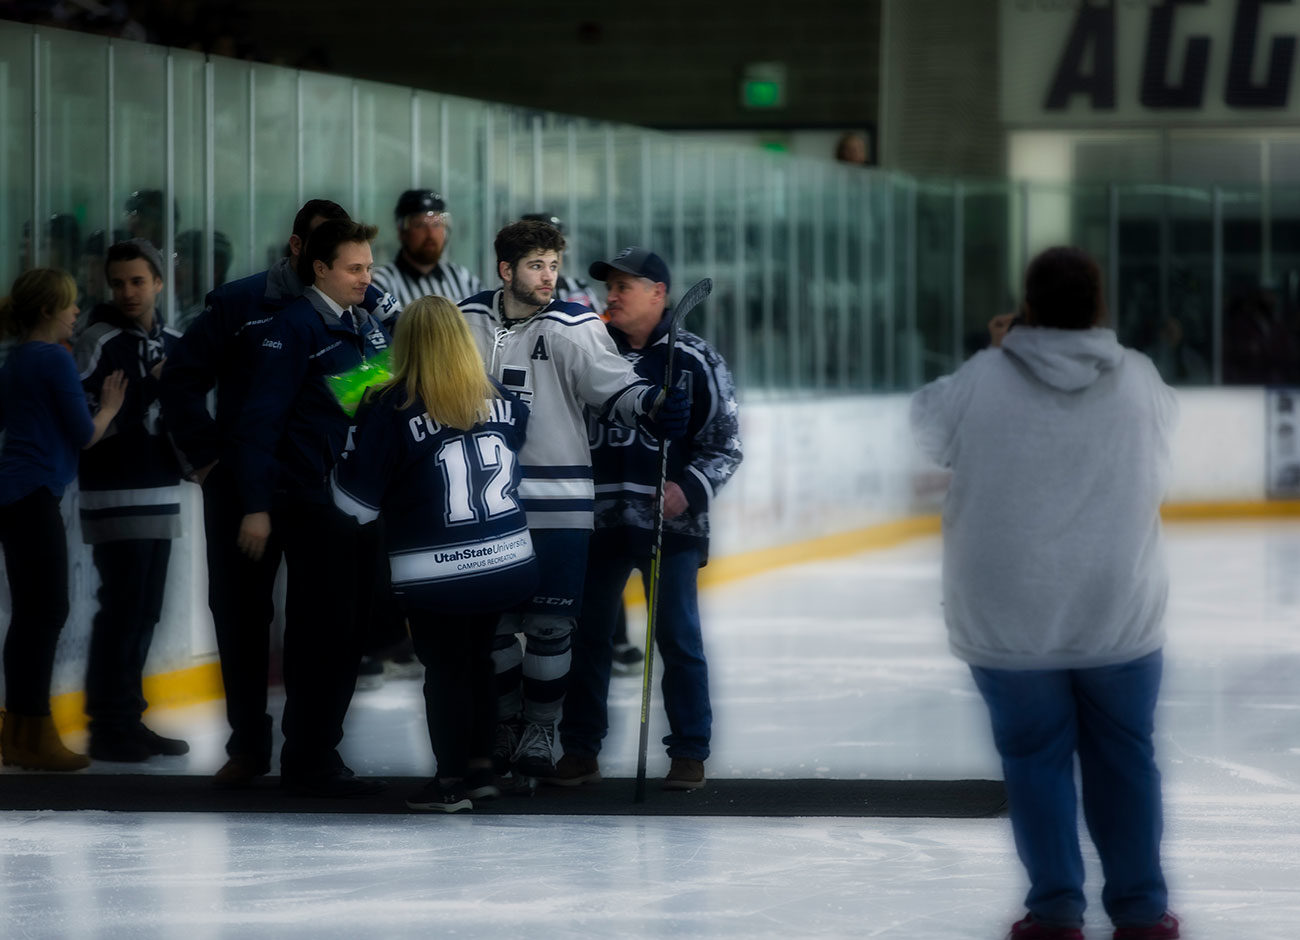 hockey player Chris Cutshall looks wistfully at the ice after his last game.